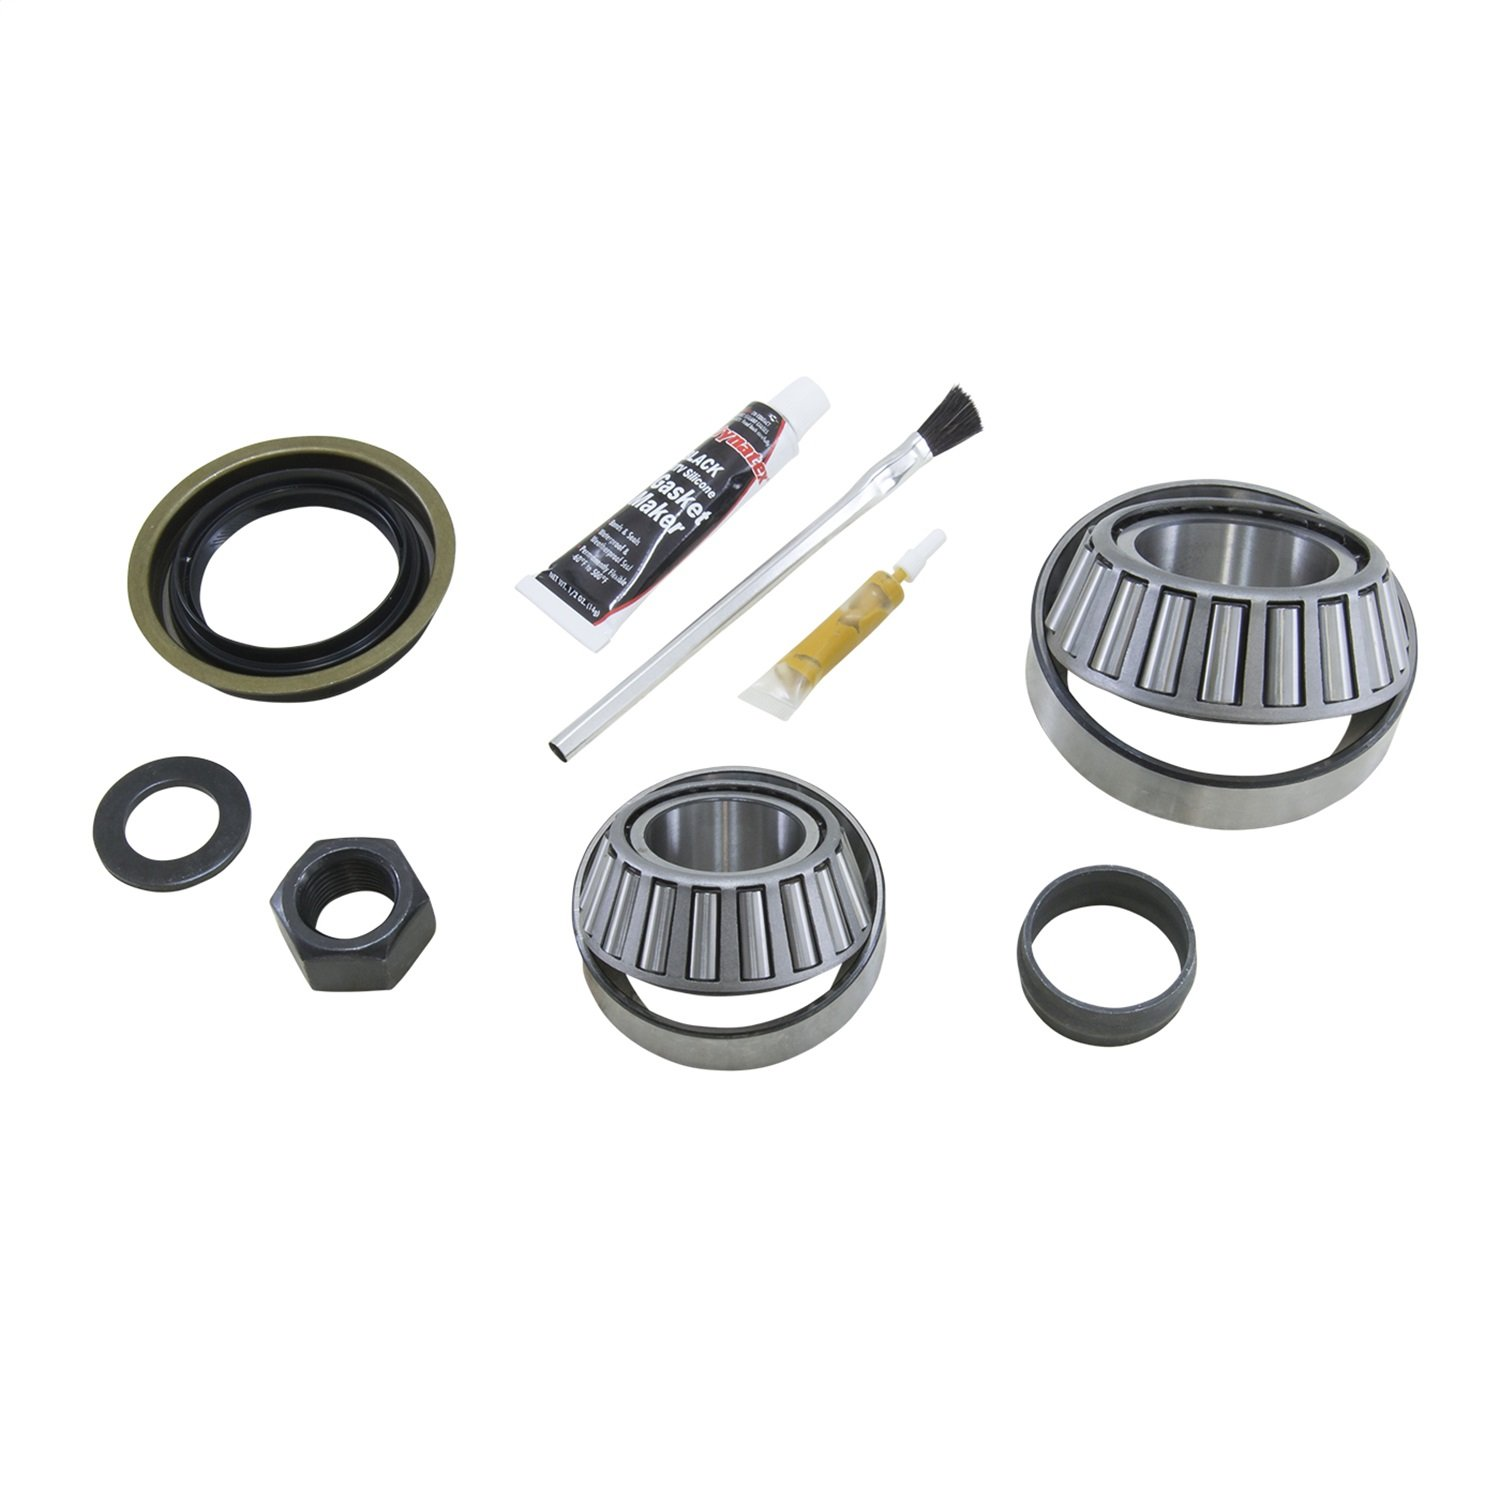 USA Standard Gear (ZBKC9.25-F) Bearing Kit for Chrysler 9.25 Front Differential by USA Standard Gear